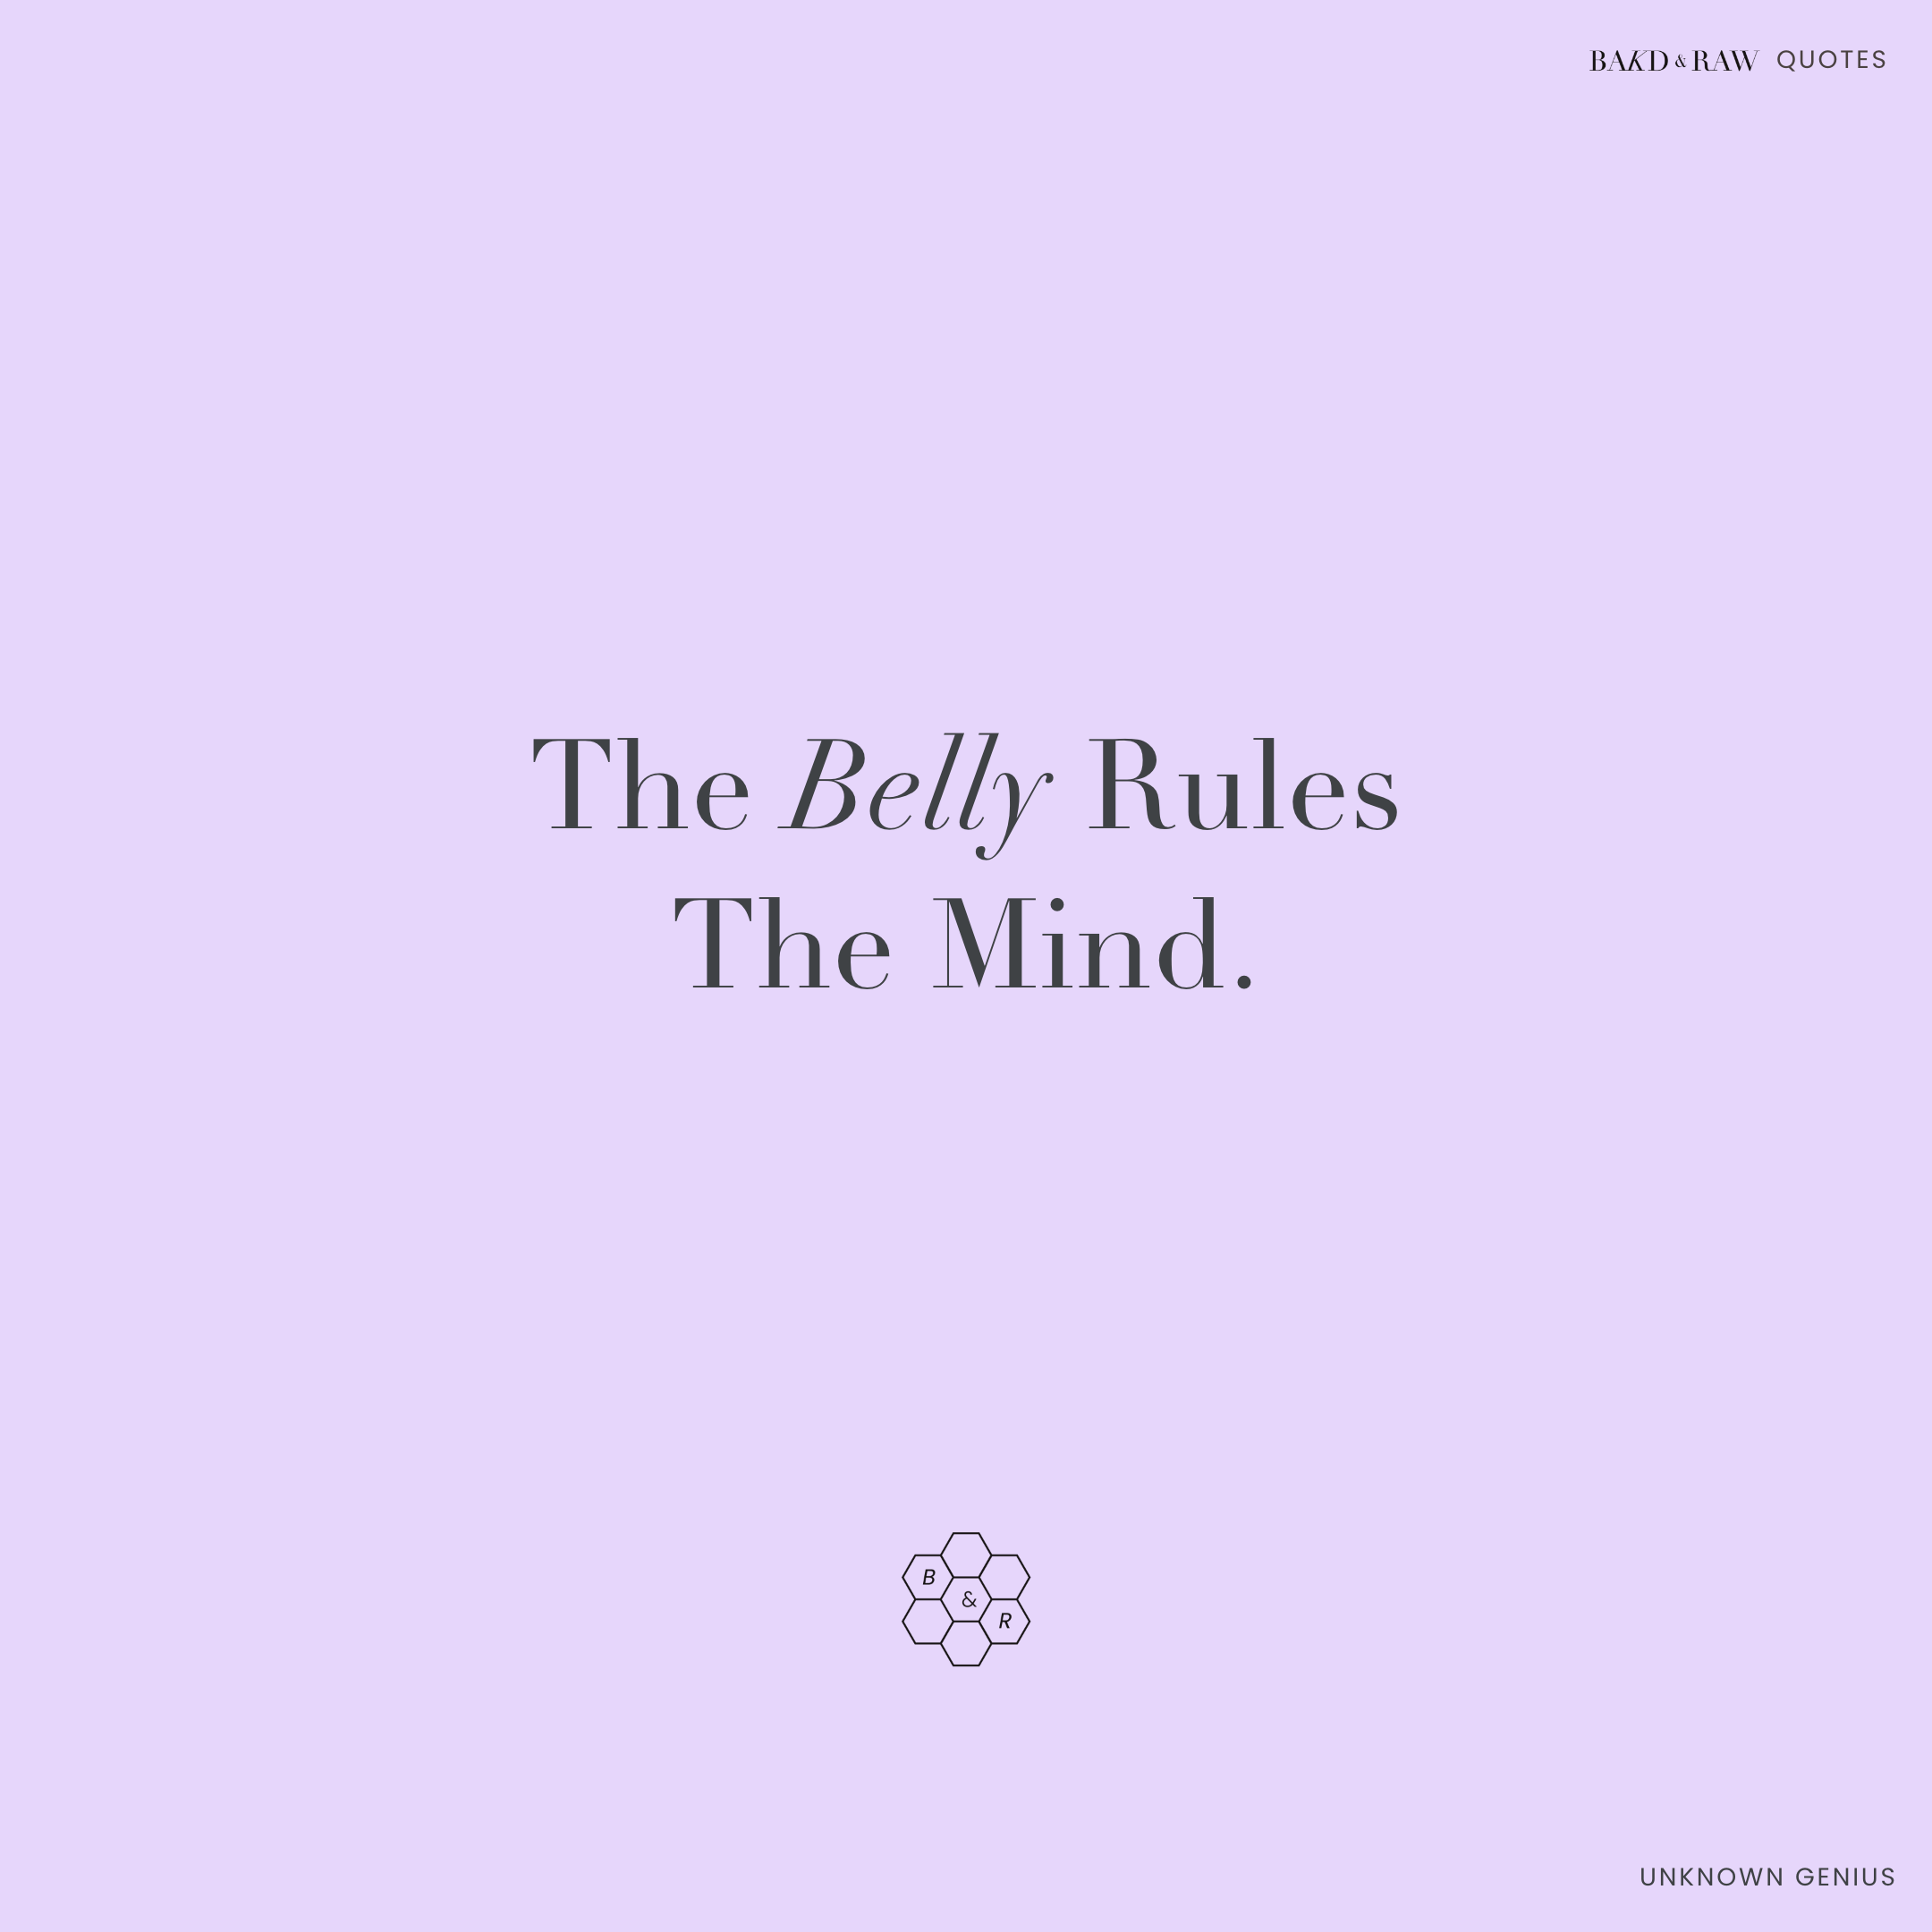 The Belly rules, Bakd&Raw Food Quotes by Karolin Baitinger